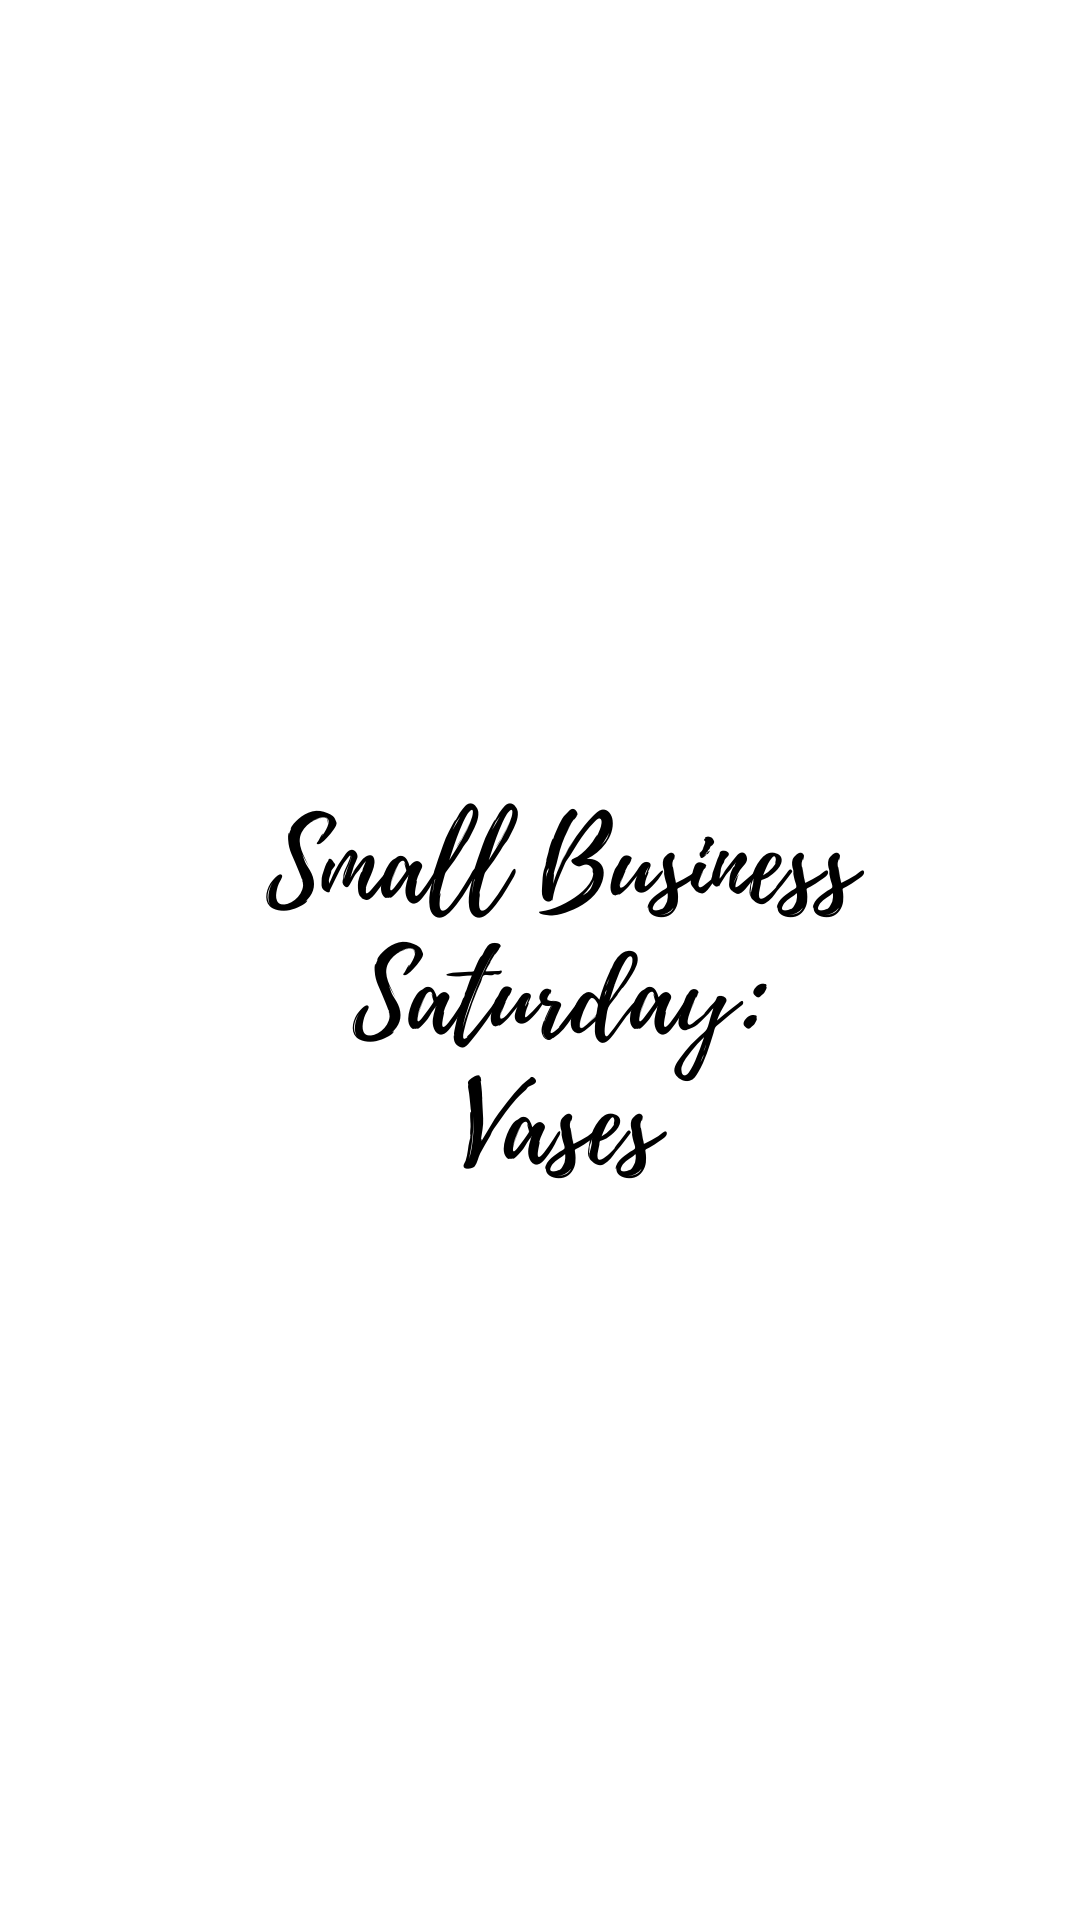 Small Business Saturday: Vases!